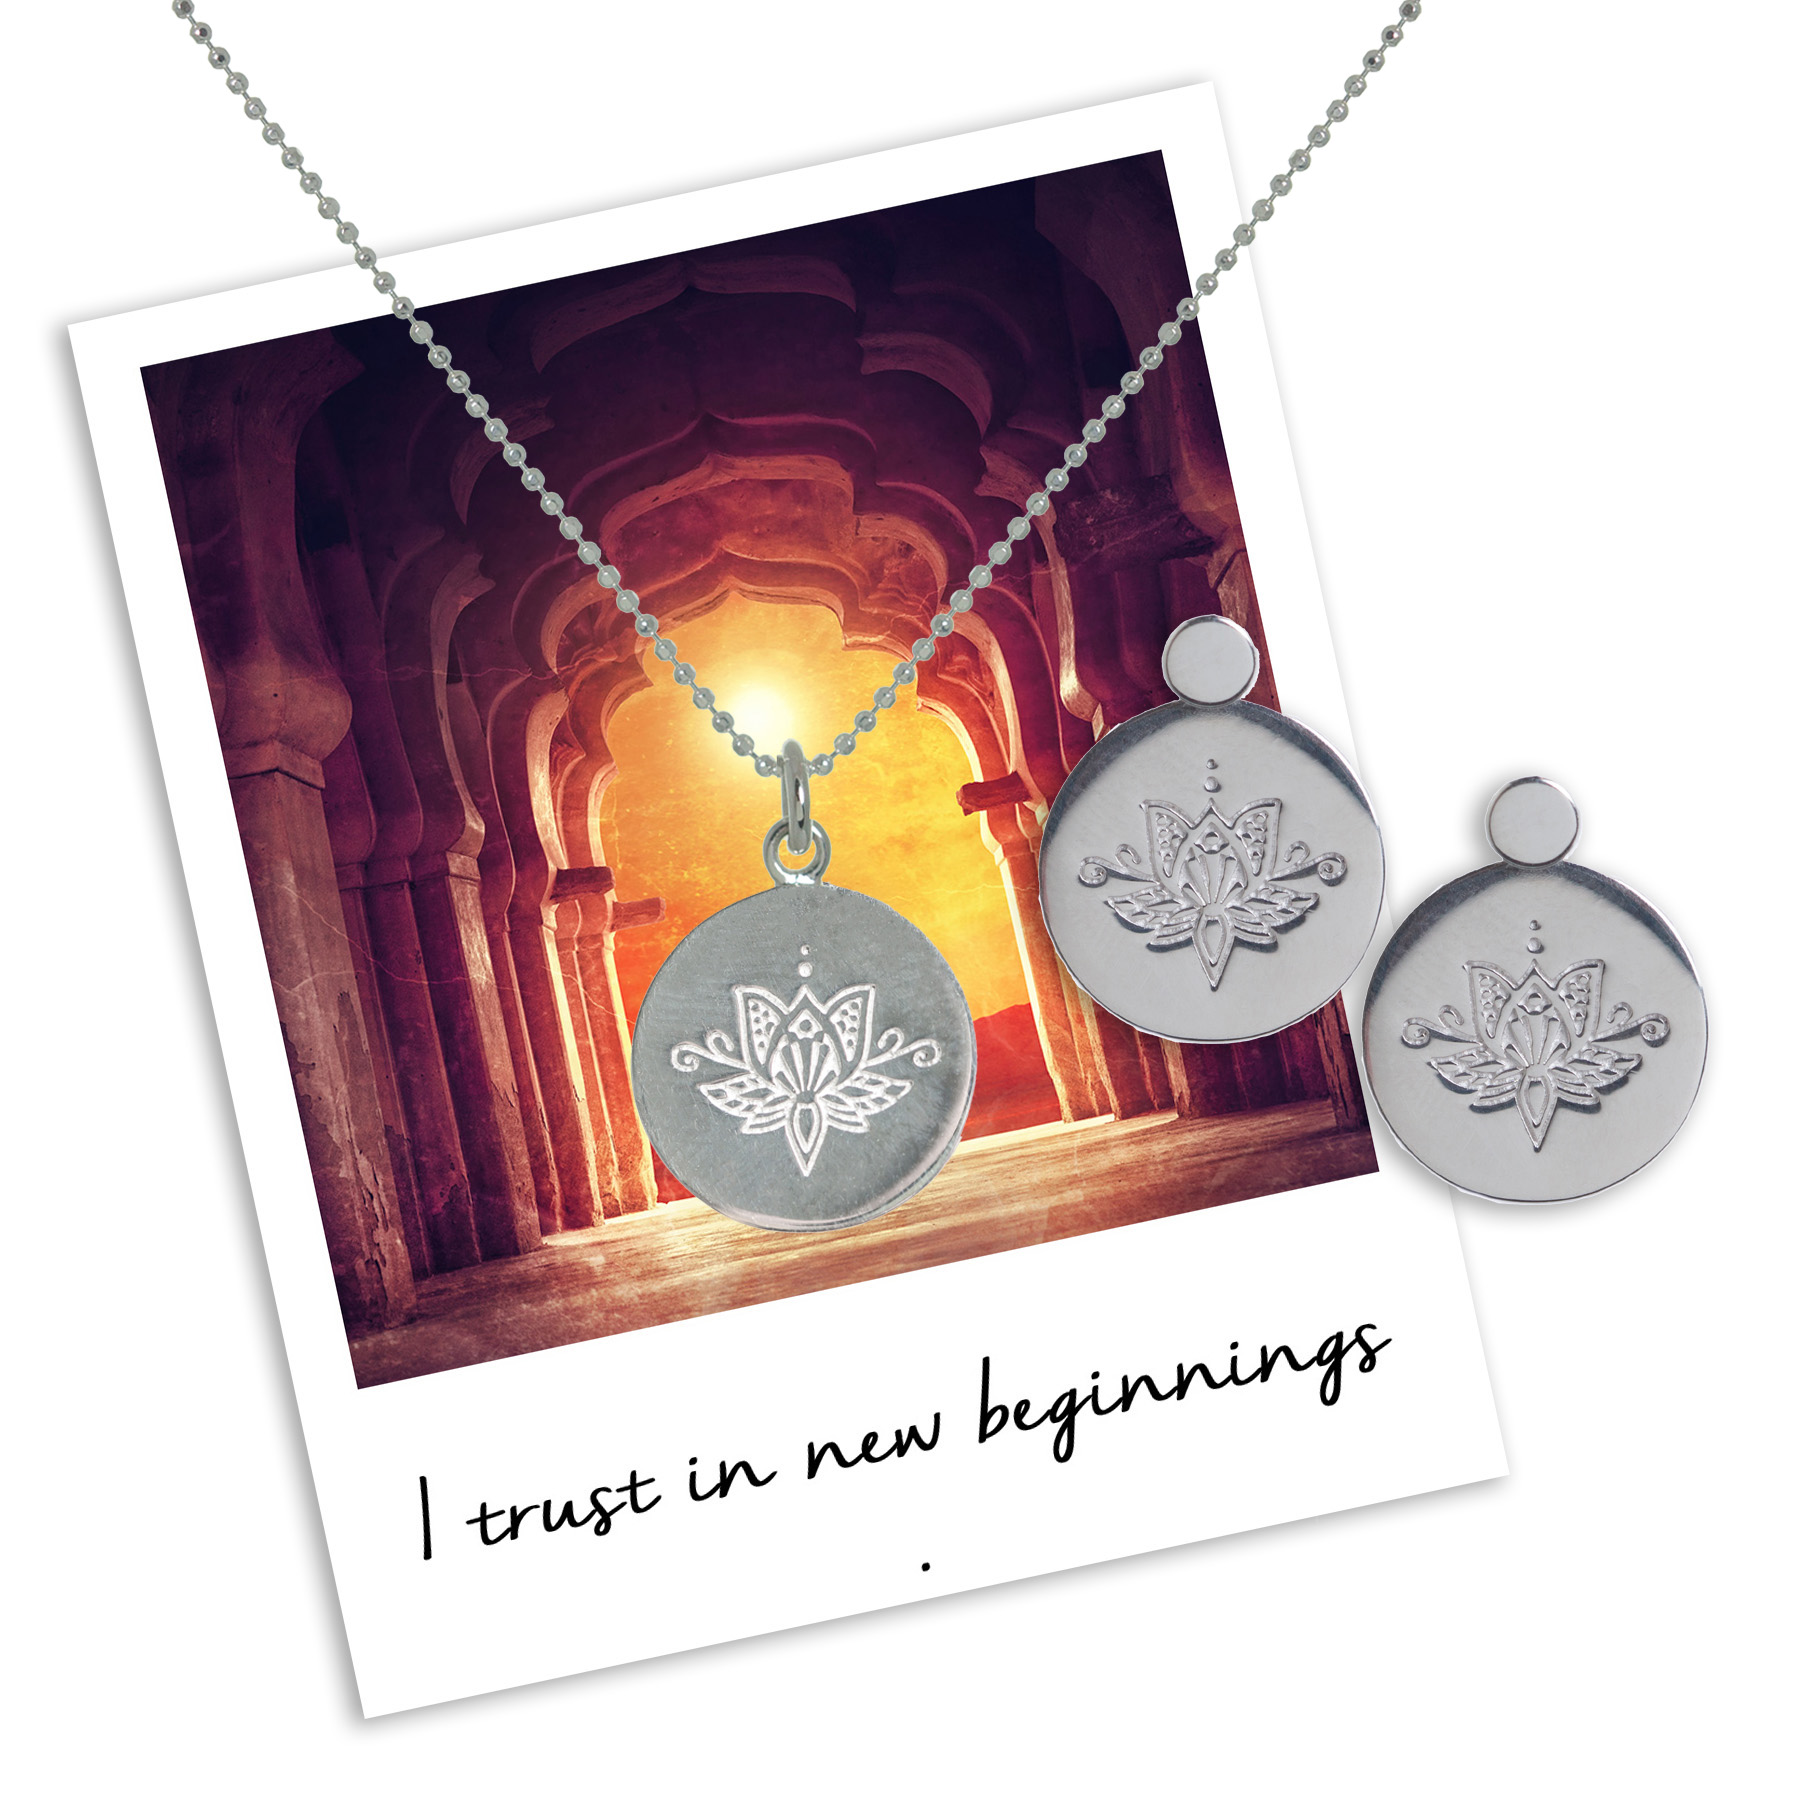 i trust in new beginnings - Lotus Necklace & Earrings